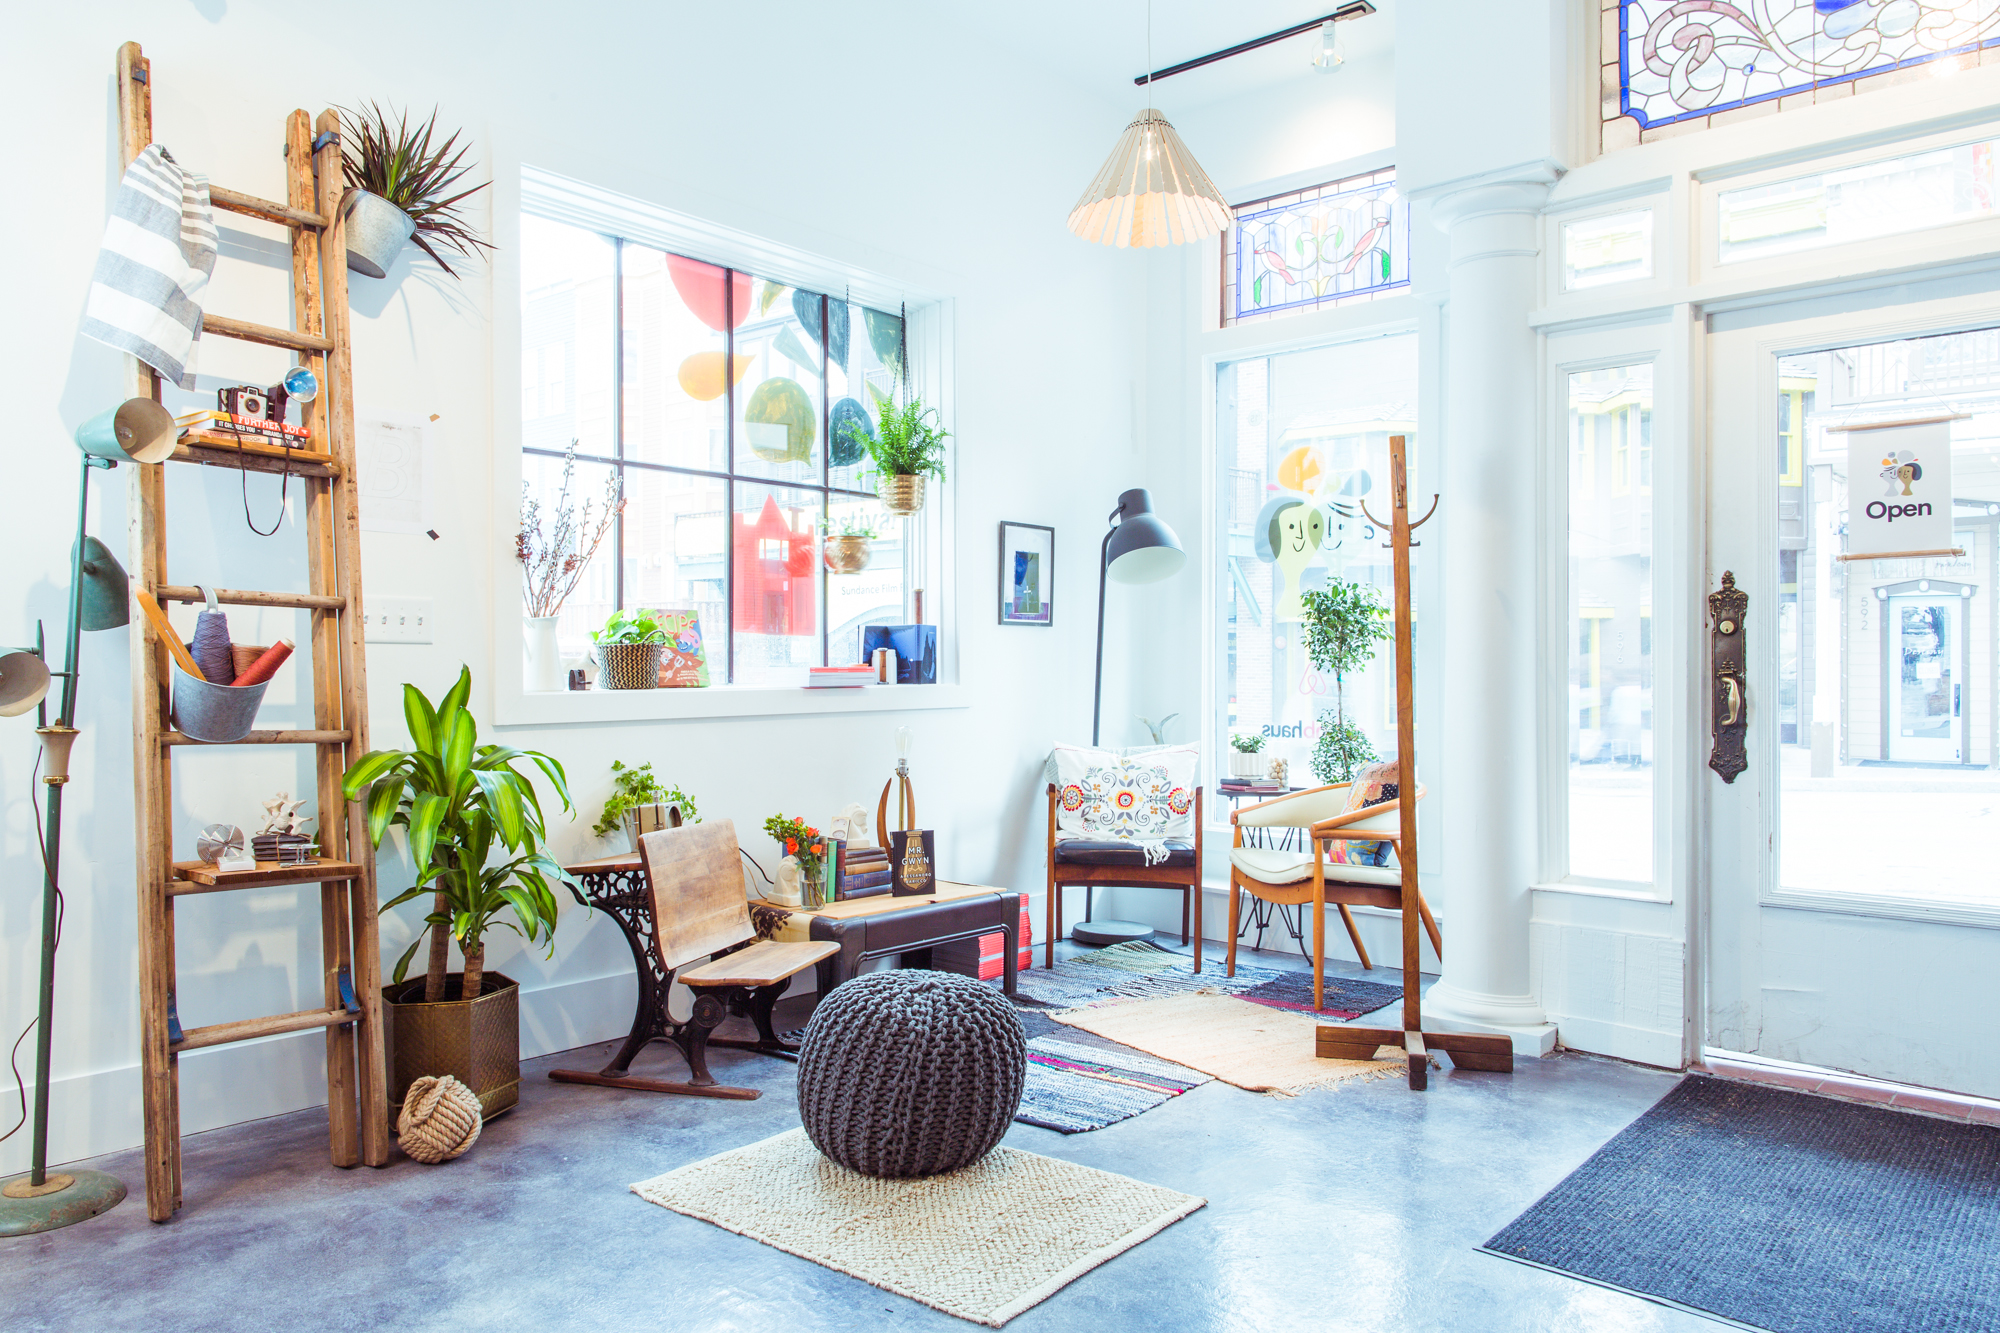 Inside the Airbnb Haus at Sundance